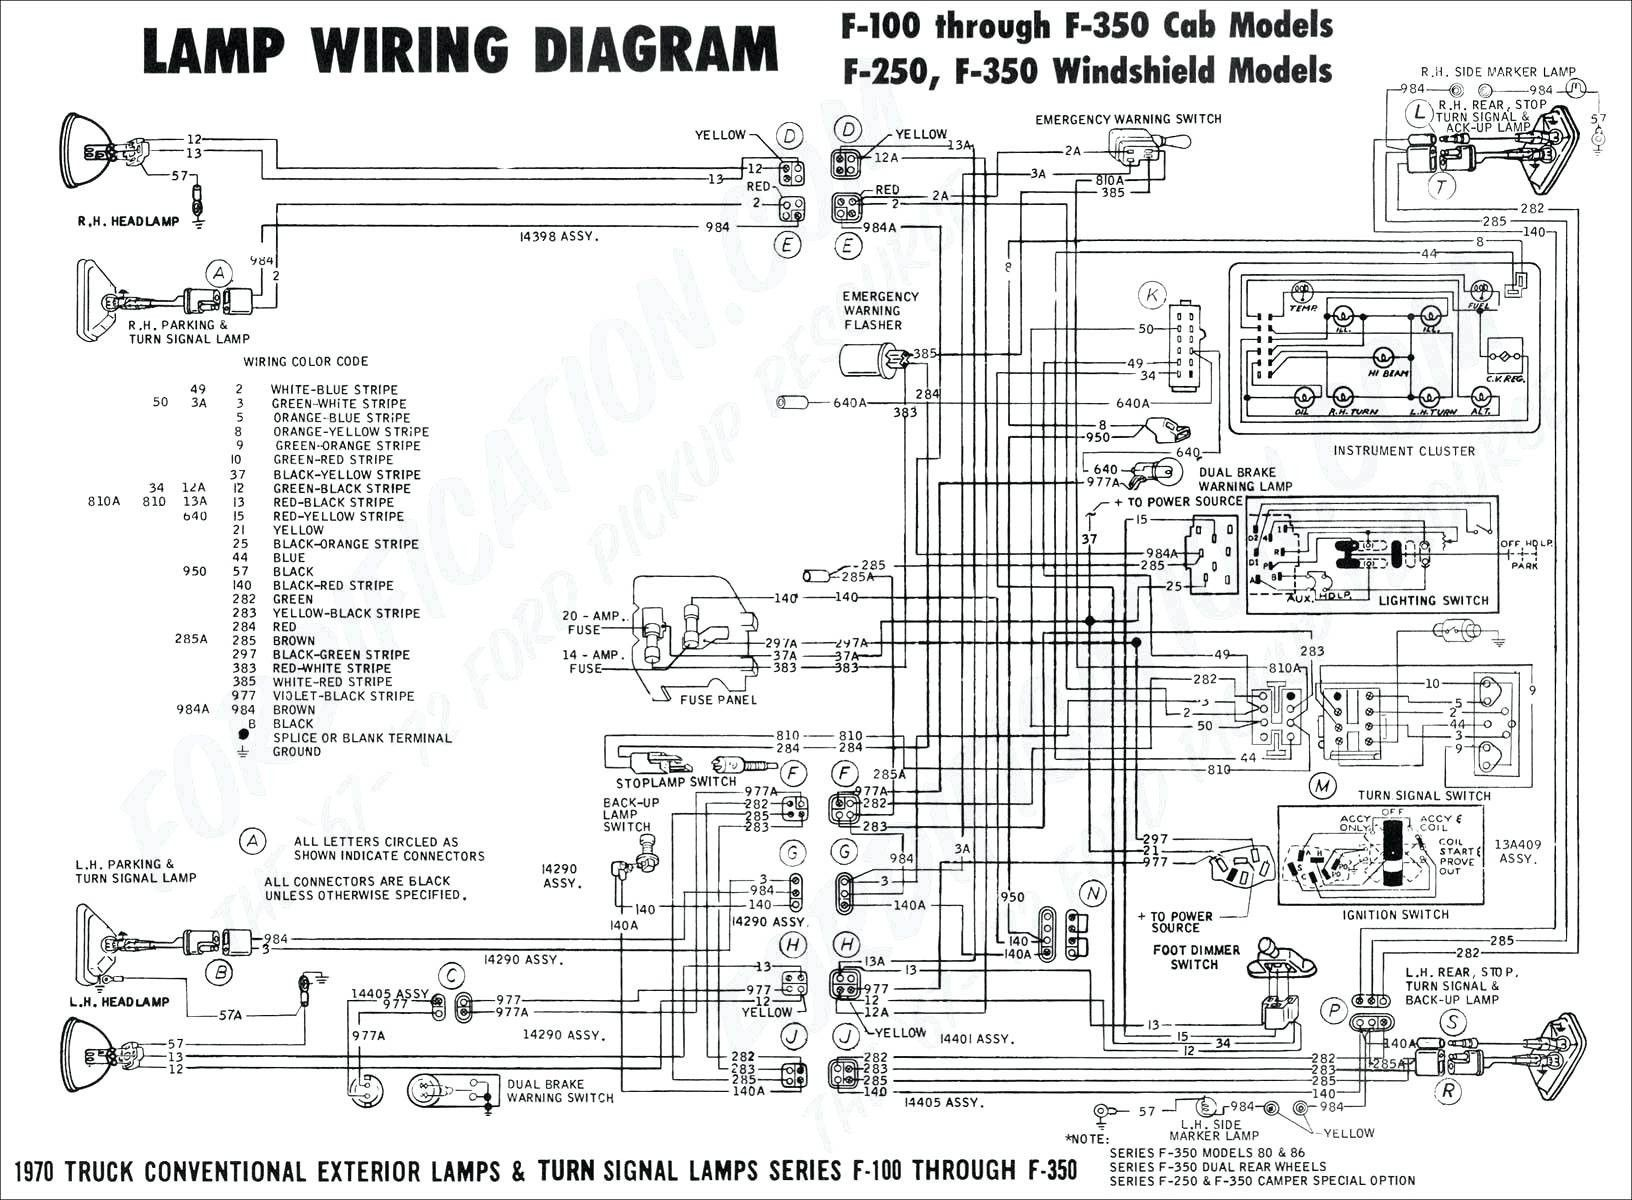 Lovely Wiring Diagram Vespa Excel 150 Diagrams Digramssample Diagramimages Wiringdiagra Electrical Wiring Diagram Electrical Diagram Trailer Wiring Diagram